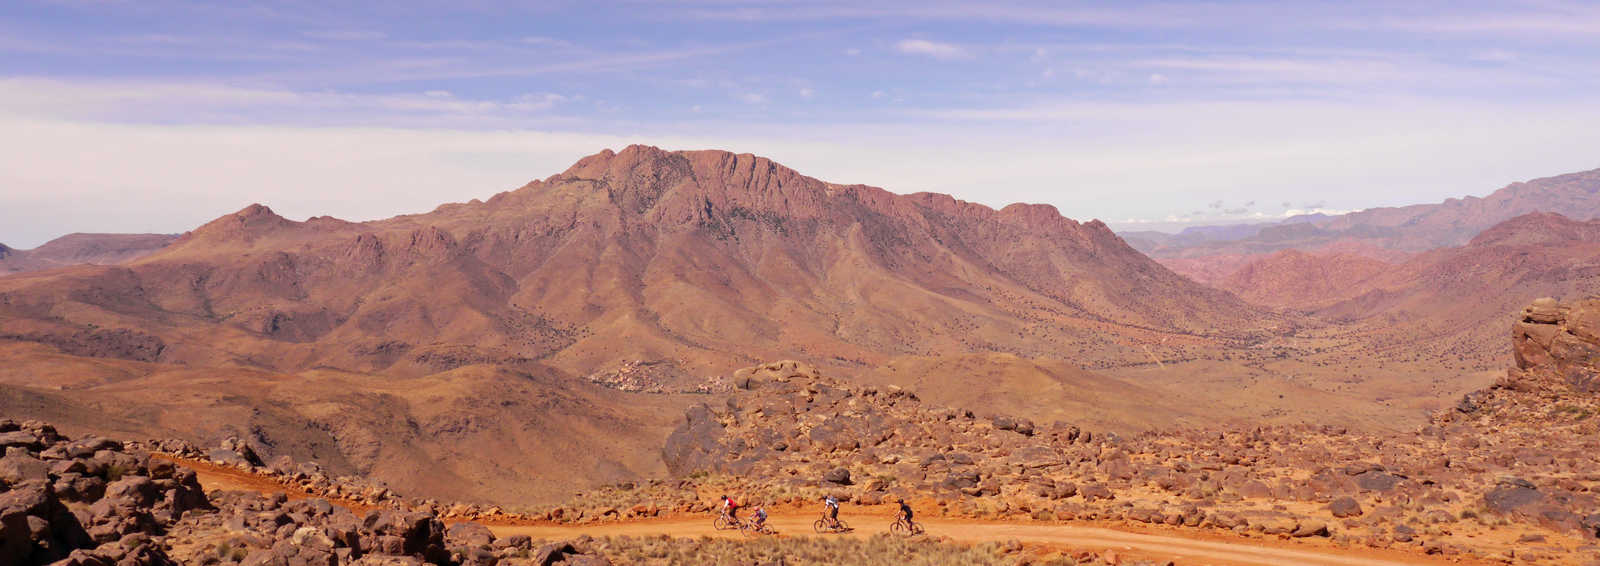 View from the Atlas Mountains, Morocco